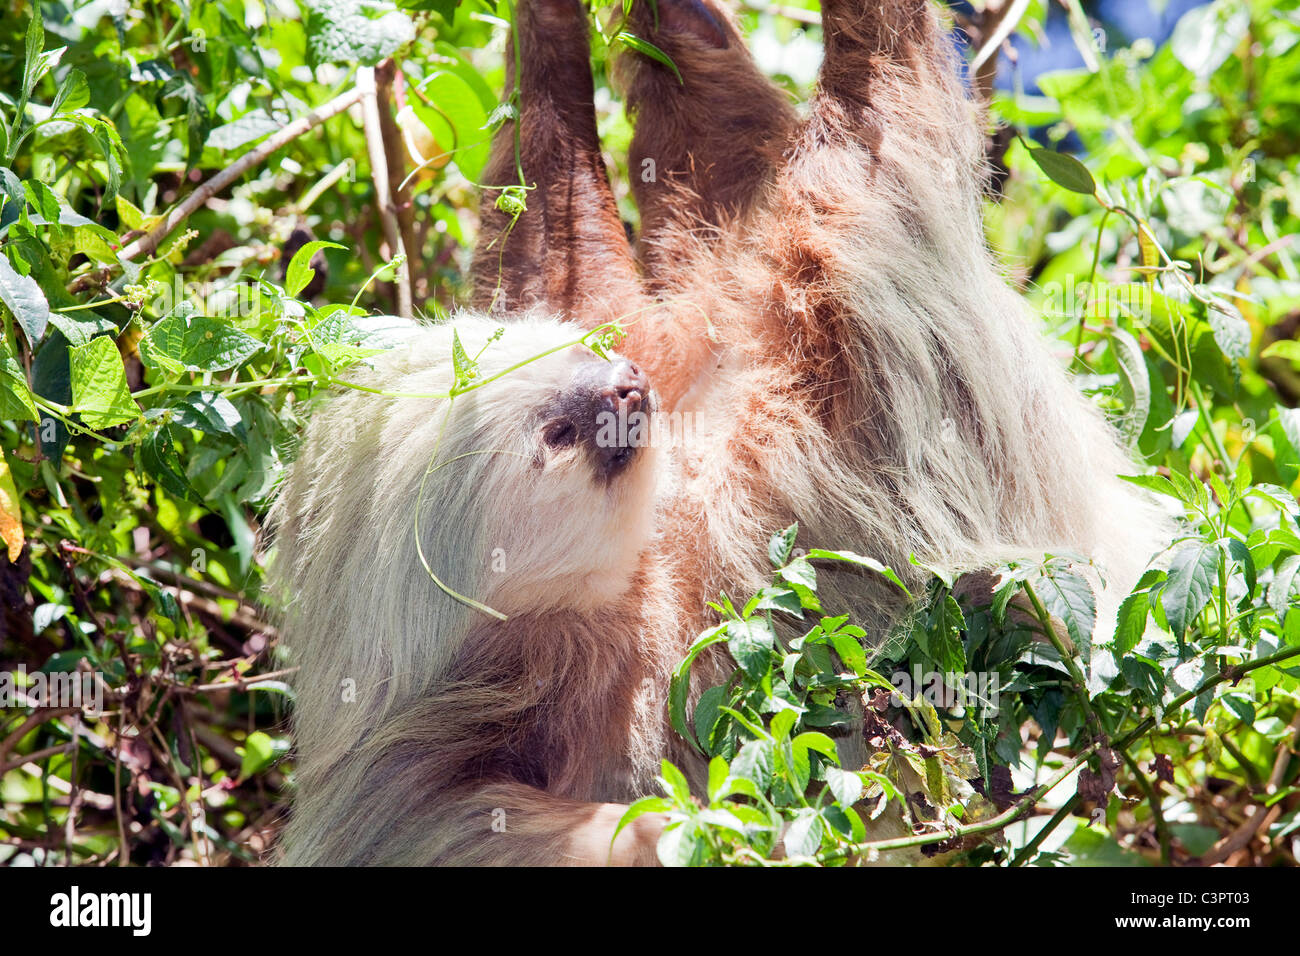 A two-toed sloth hangs from a branch in Costa Rica. Stock Photo